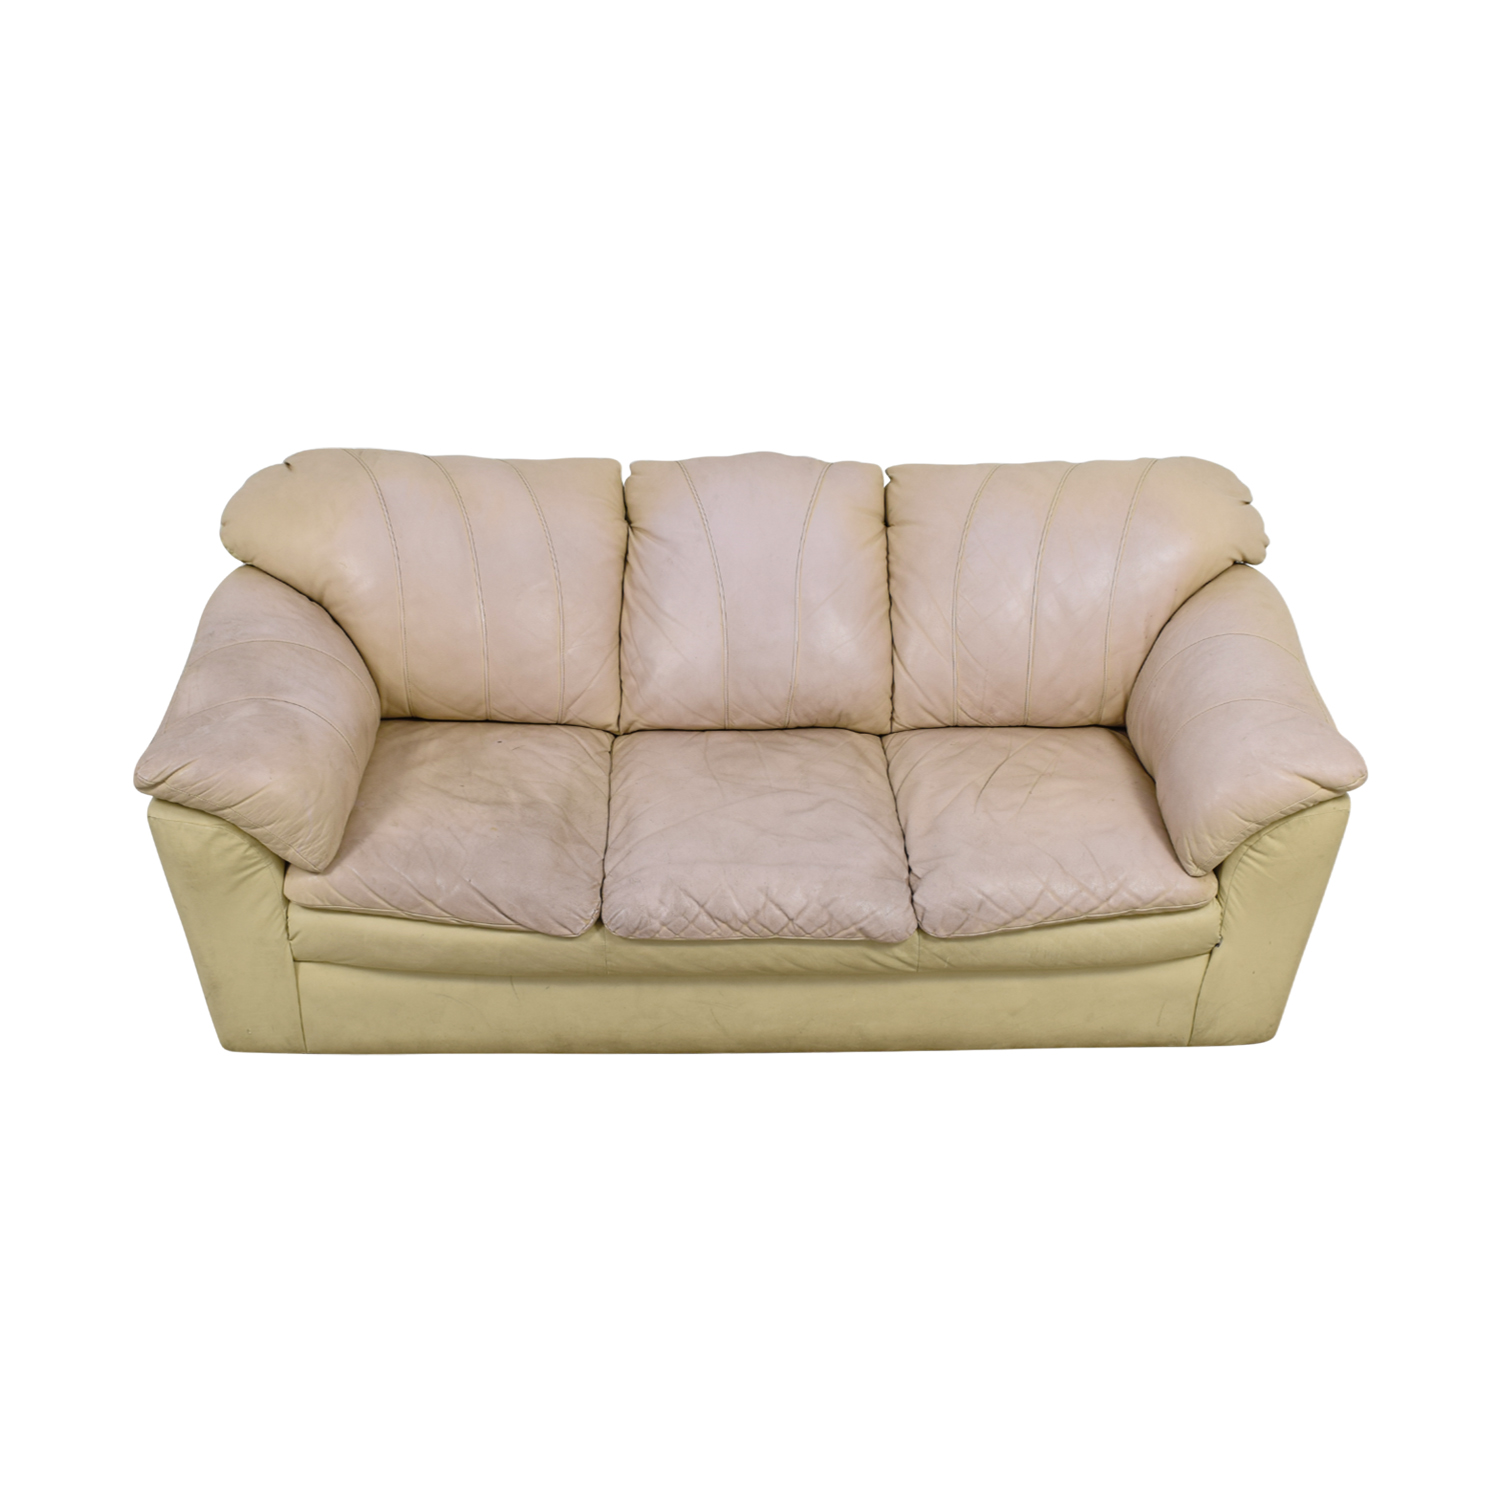 buy Cream Leather Pillowed Arm Sofa Classic Sofas